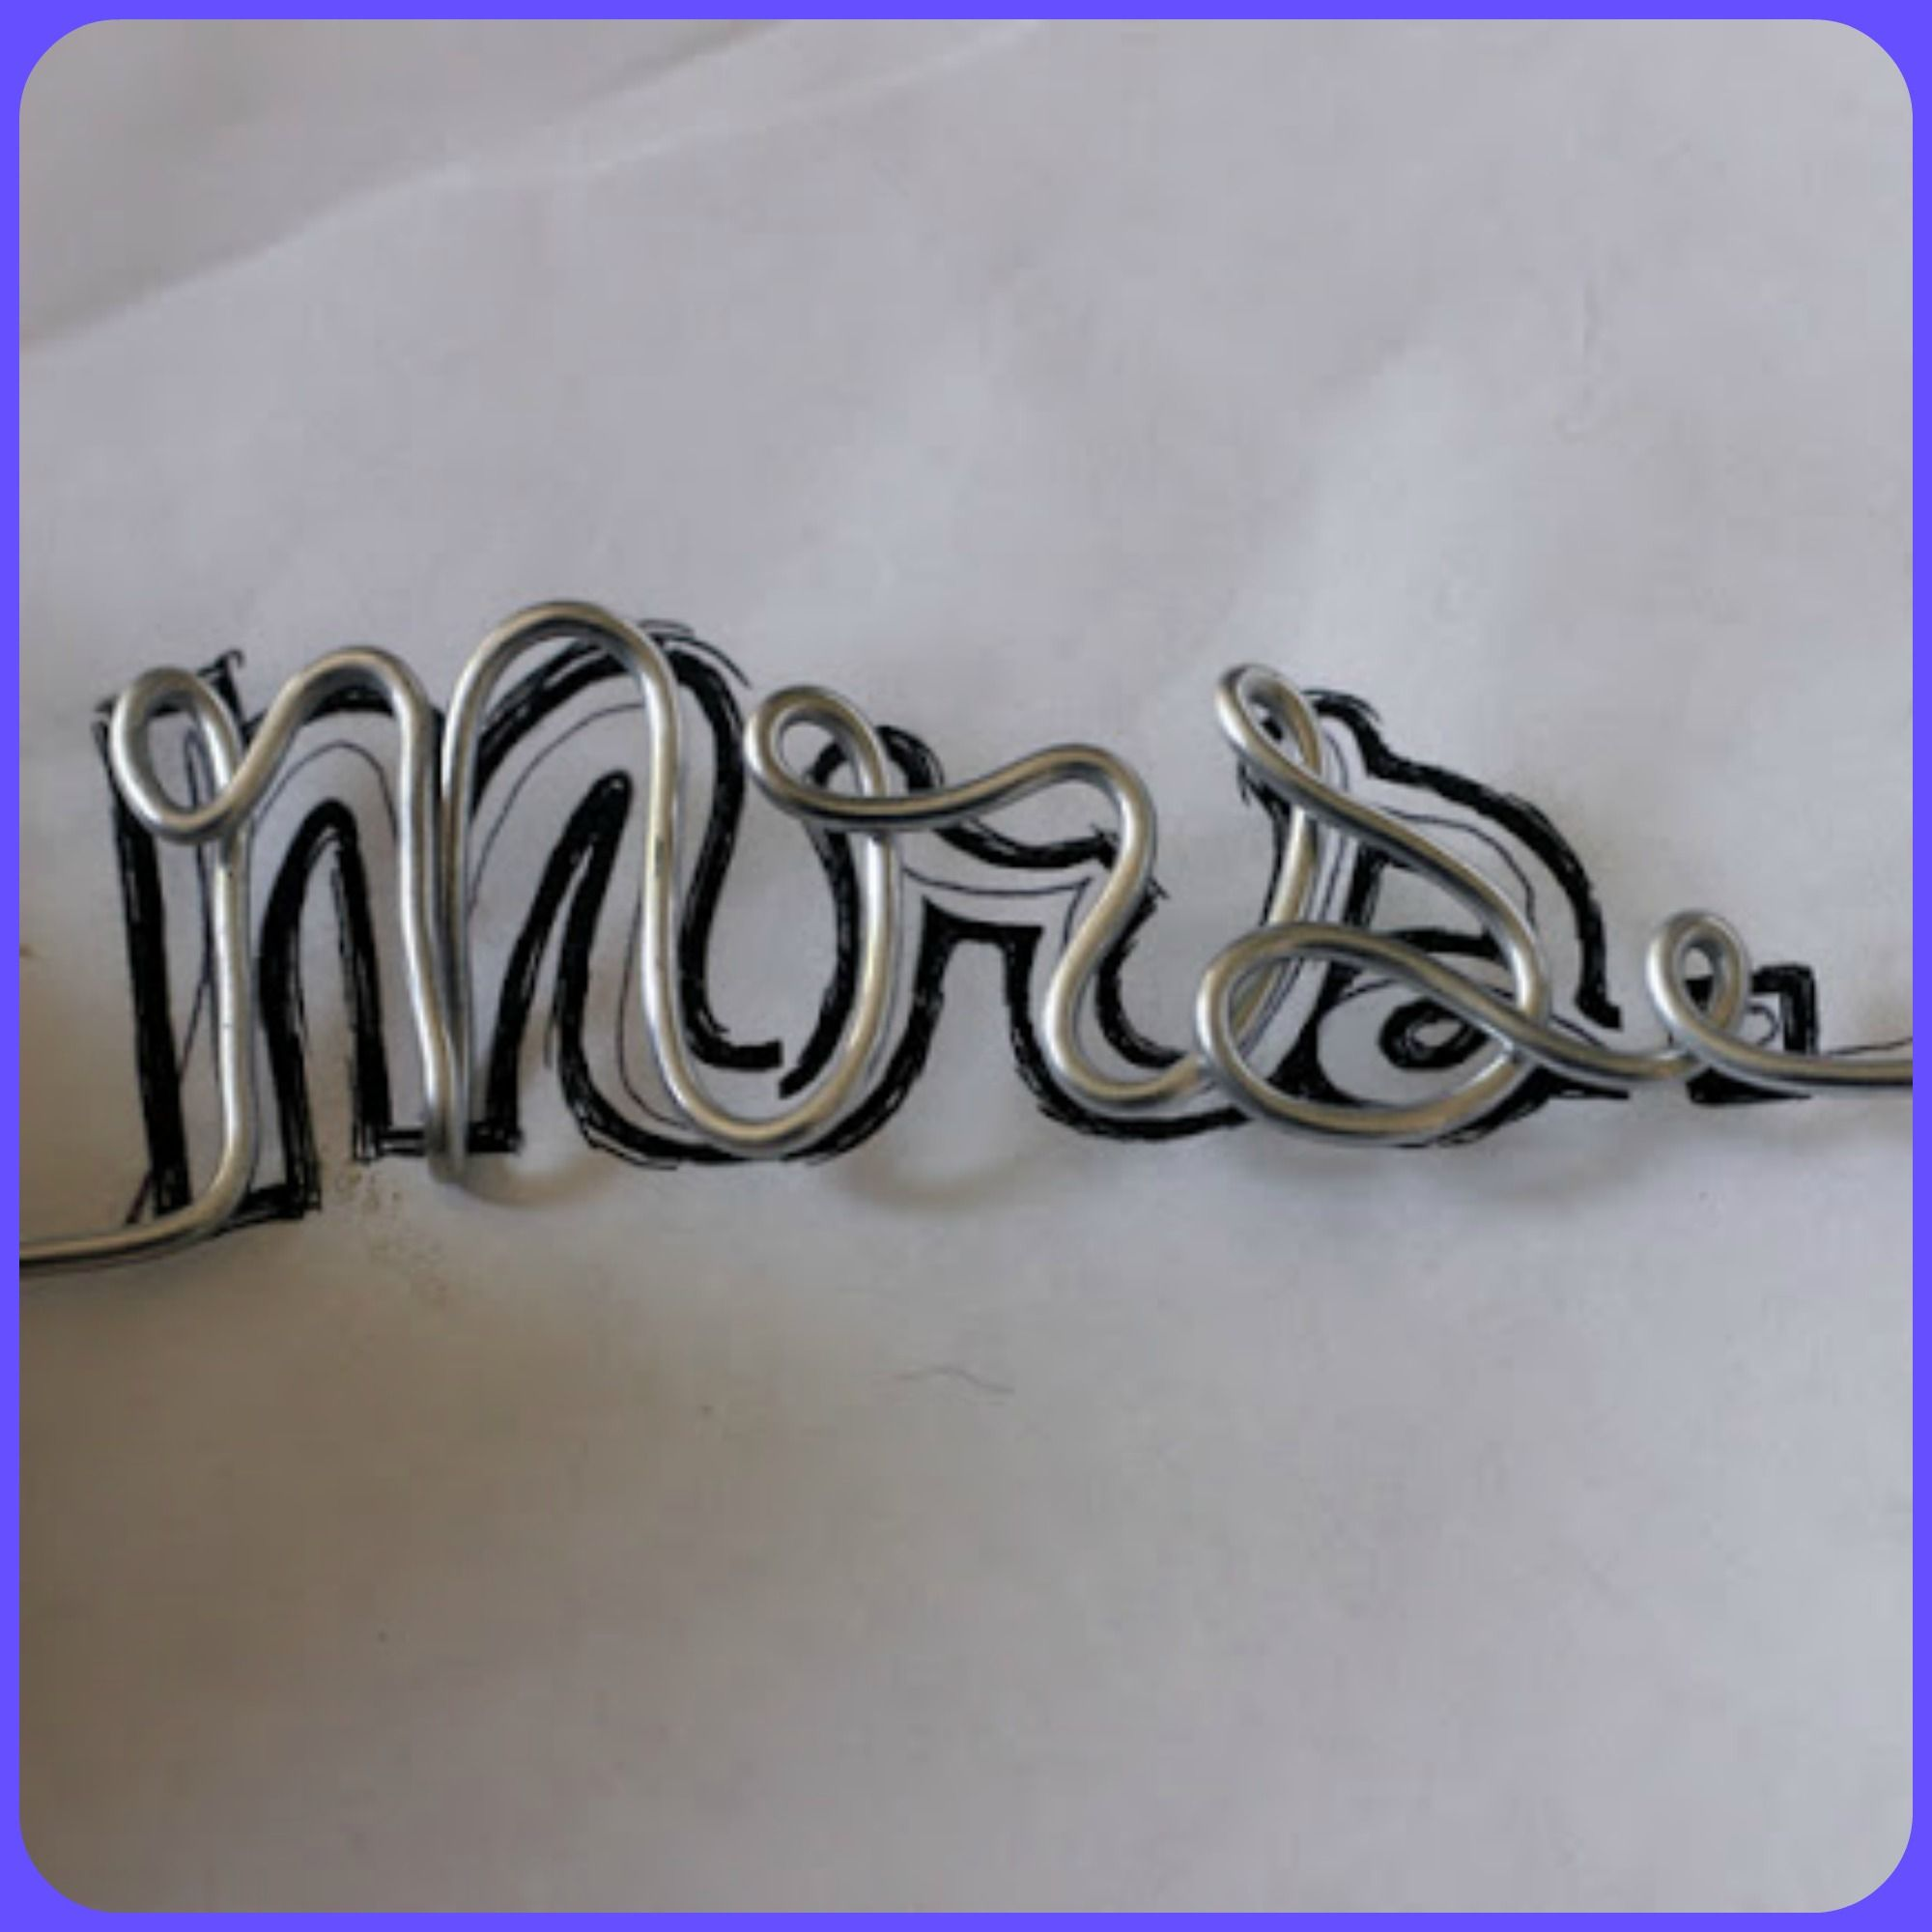 Diy Name Wire Hangers Center Delixi Air Circuit Breaker Cdw16300 China Manufacturer Personalized Wedding Michelle S Bridal And Tuxedo Rh Za Pinterest Com